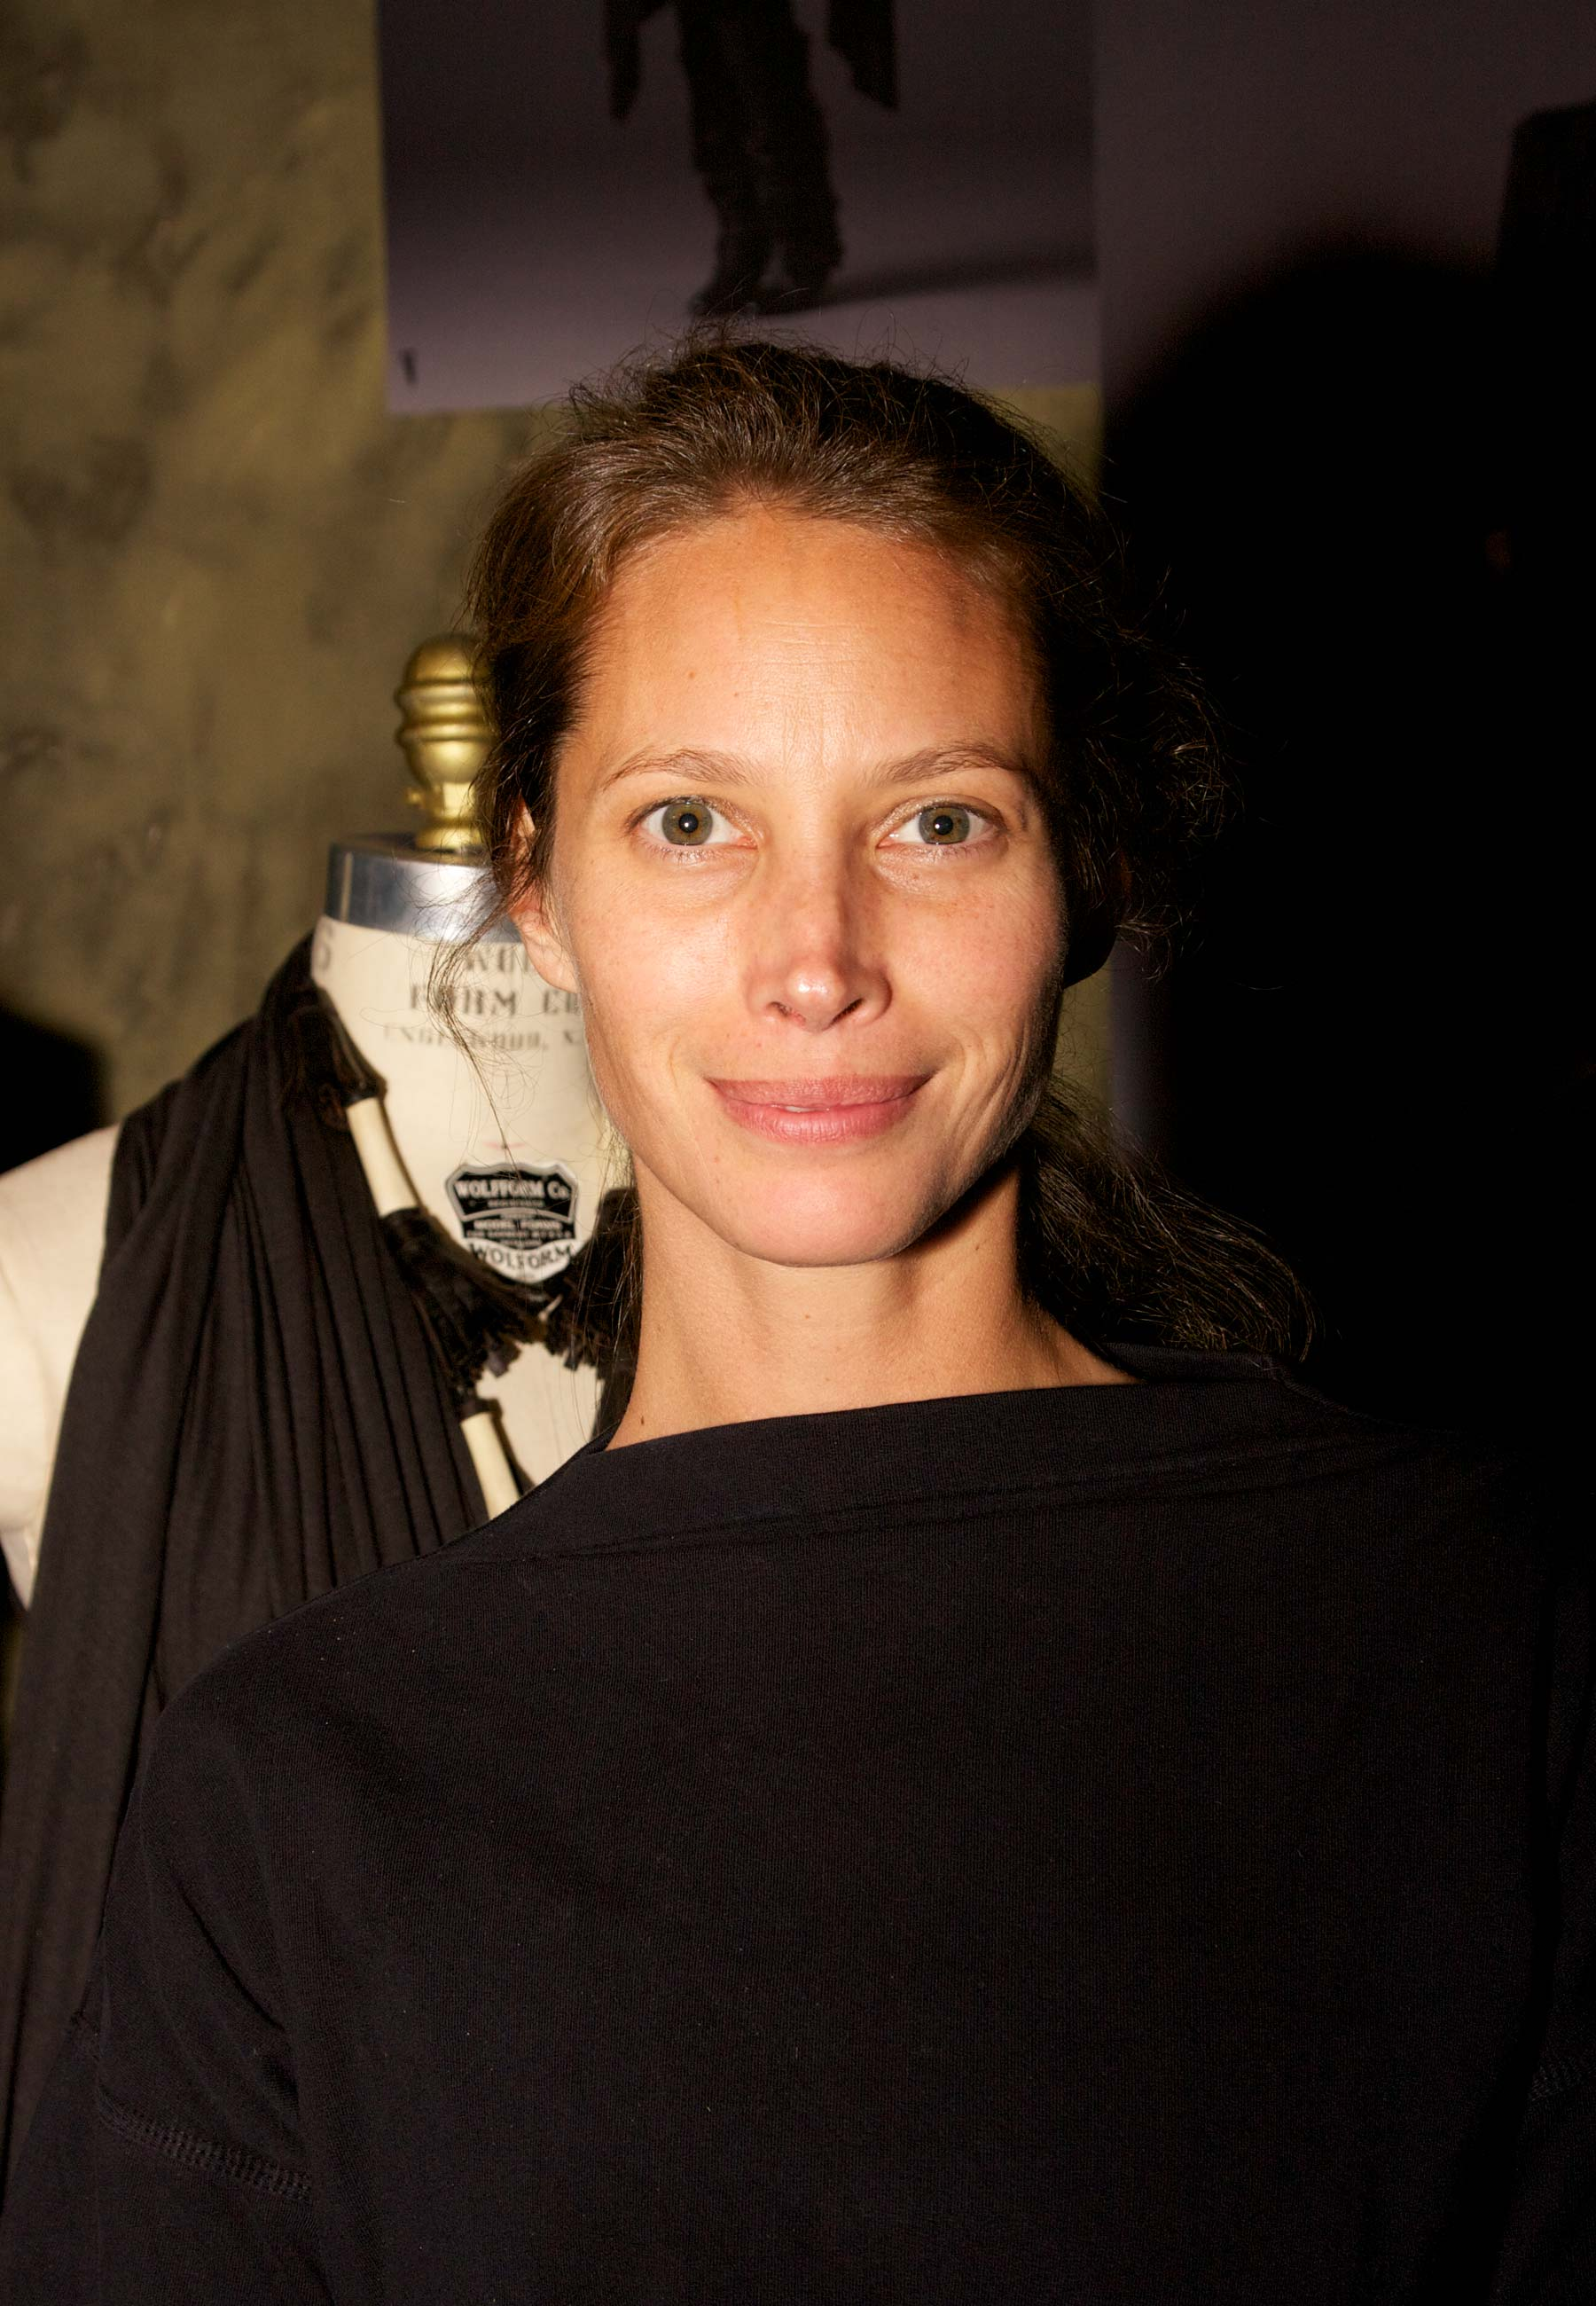 Fashion Model Christy Turlington in NYC